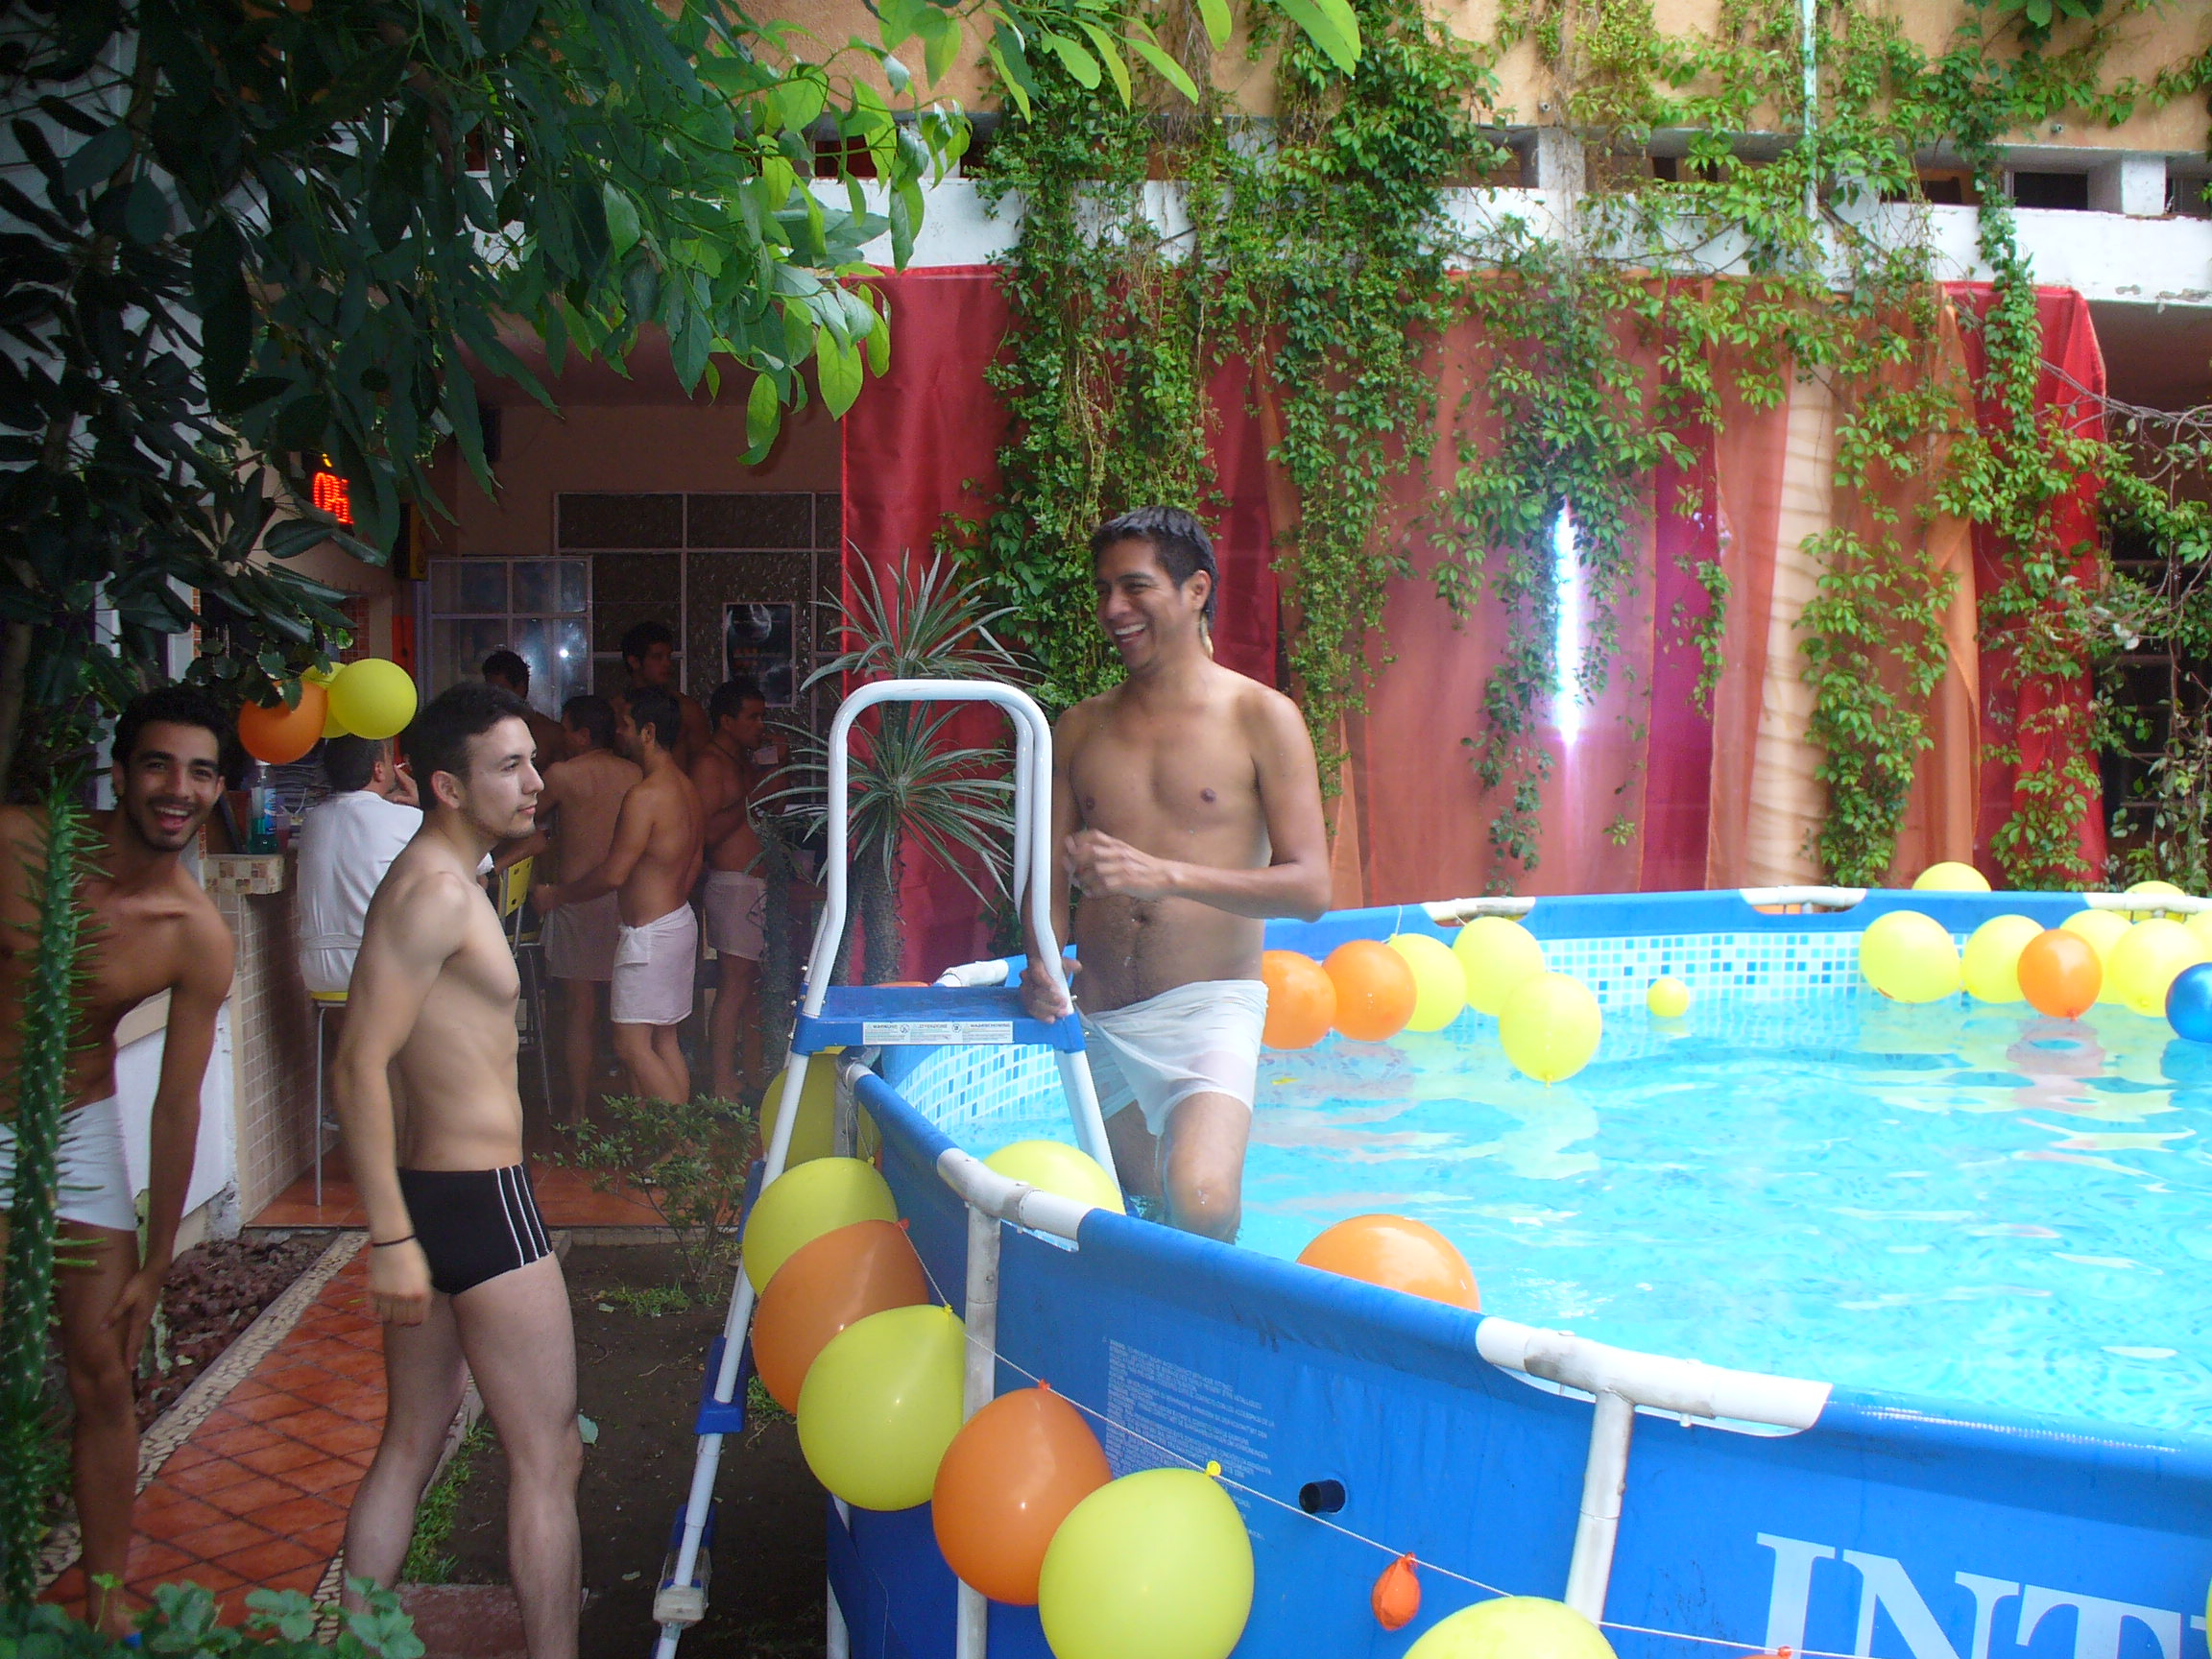 Club de campo gay new orleans